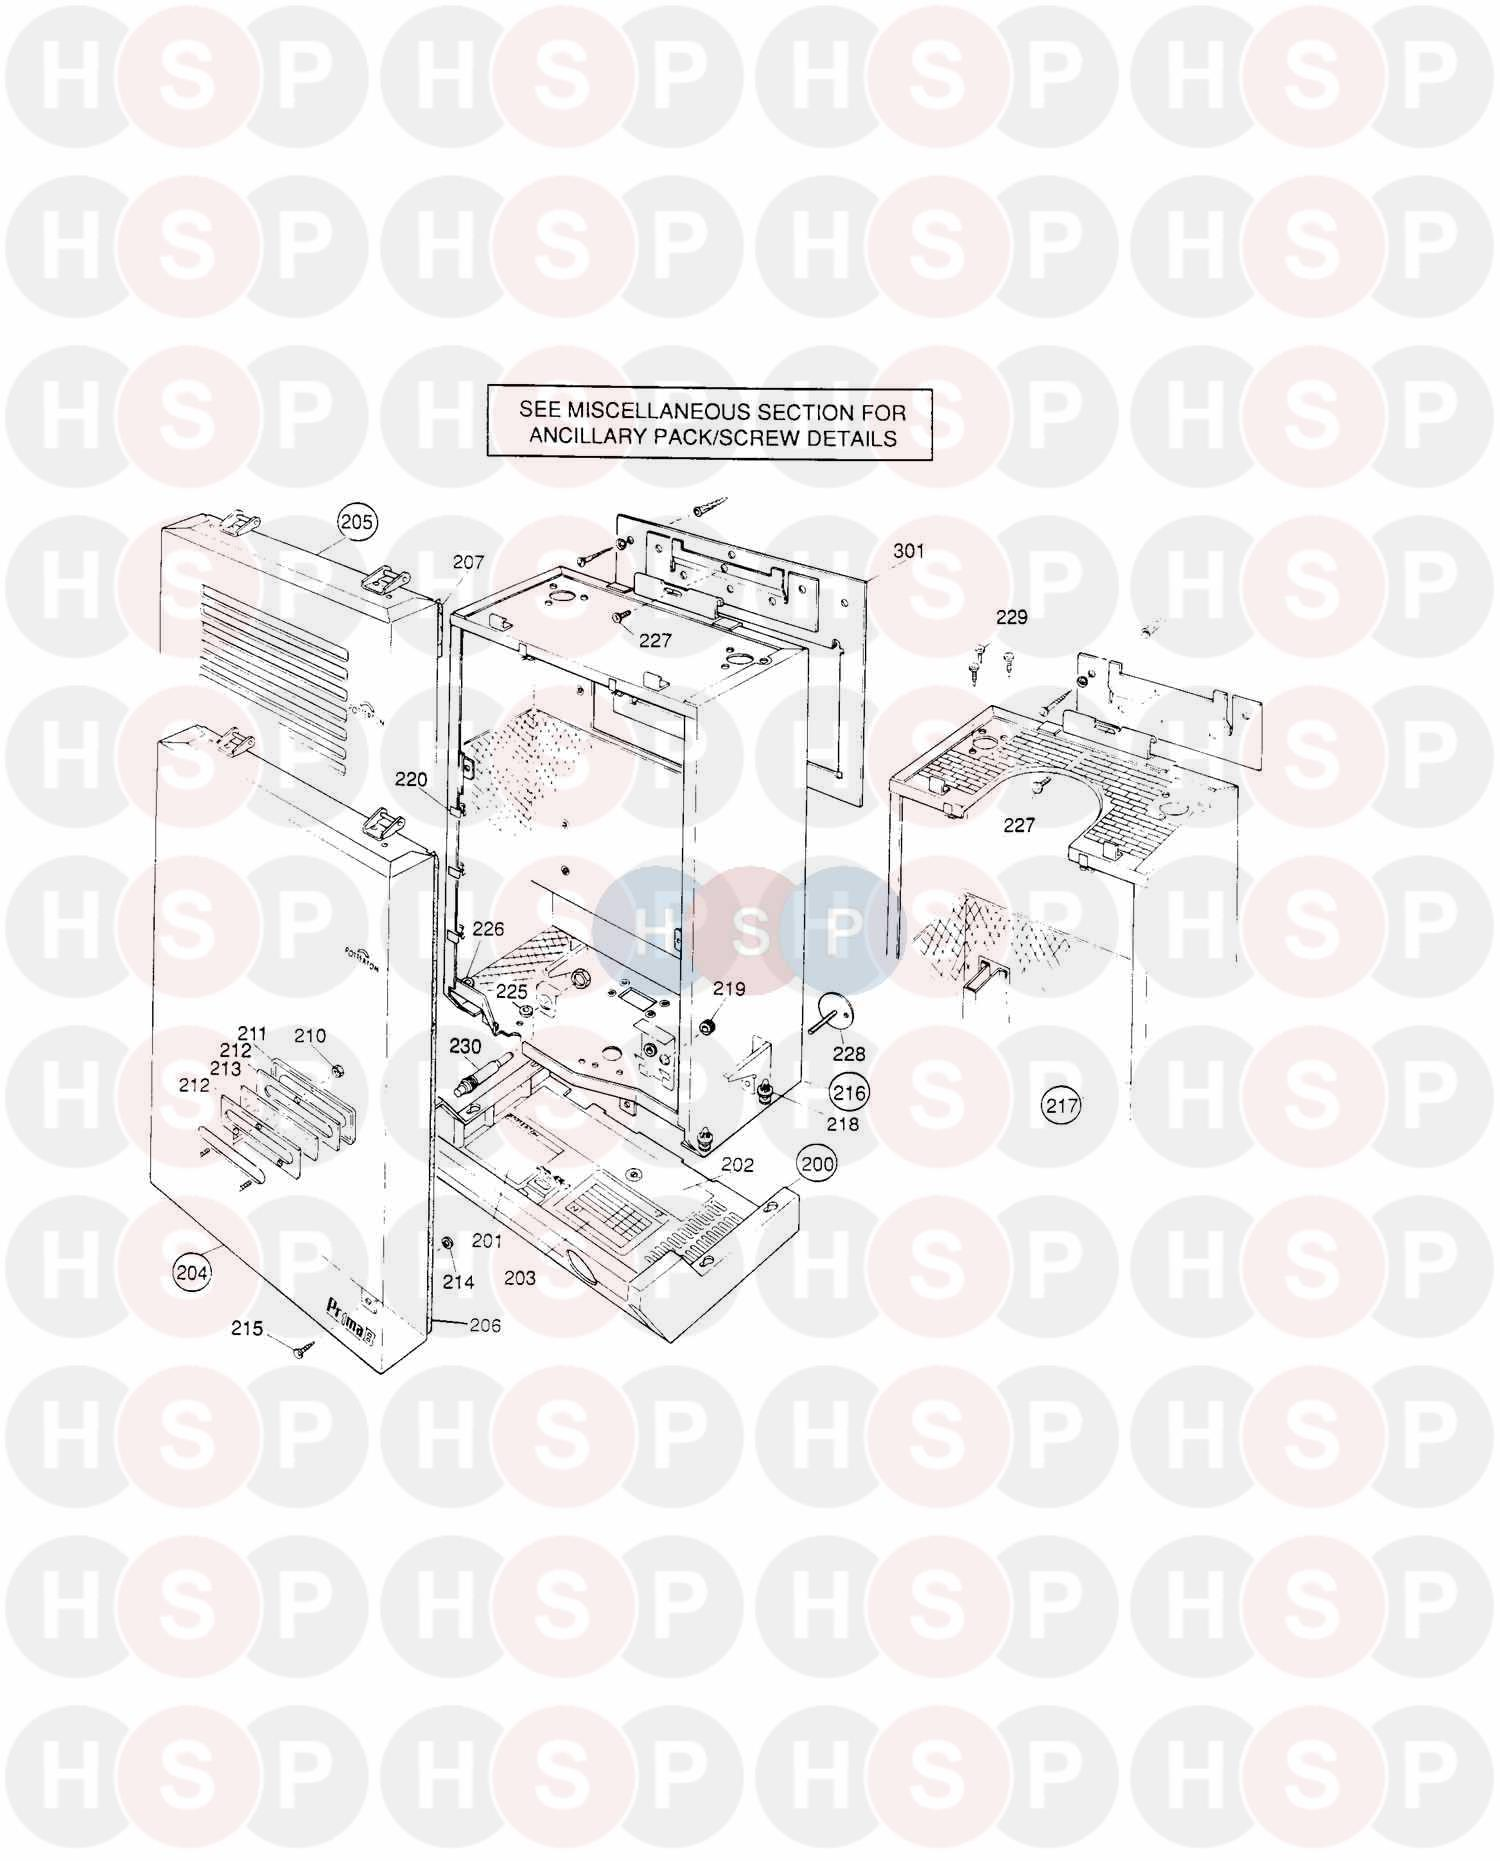 Potterton Prima C 50 Outer Case Diagram Heating Spare